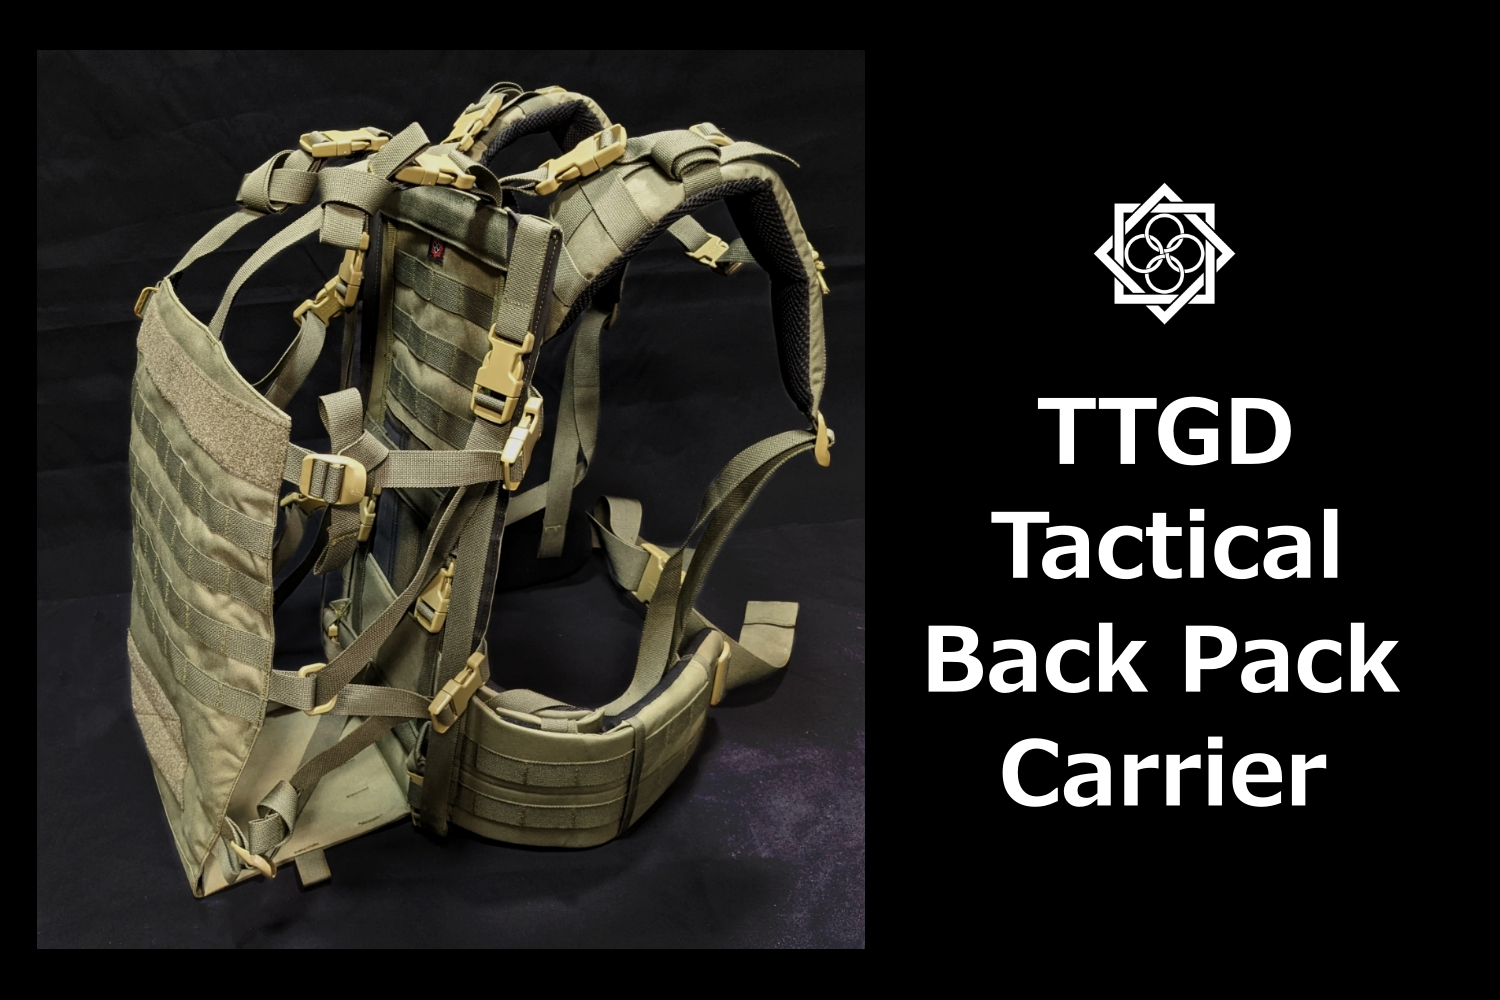 TTGD-Tactical Backpack Carrier